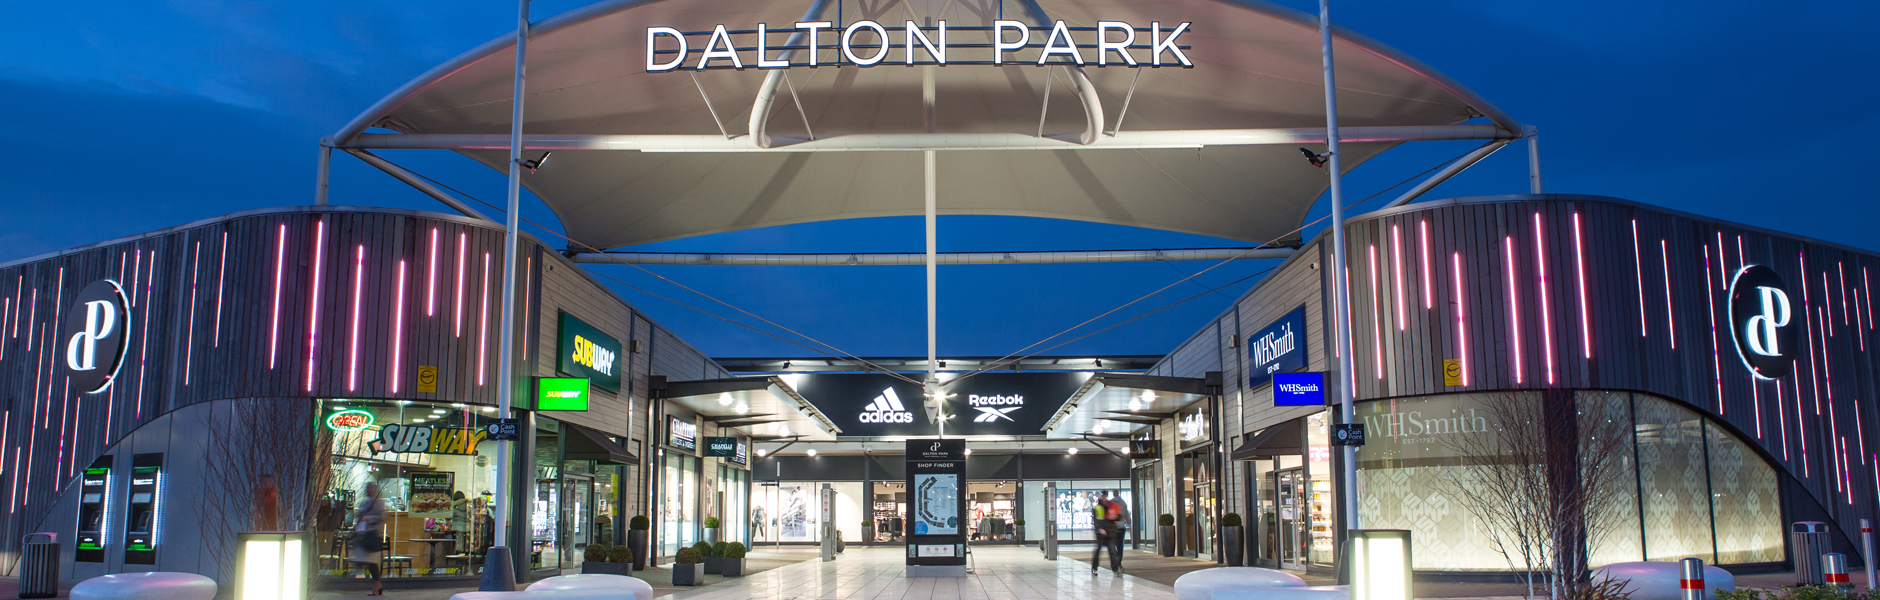 Four Fresh brands boost thriving Dalton Park Banner